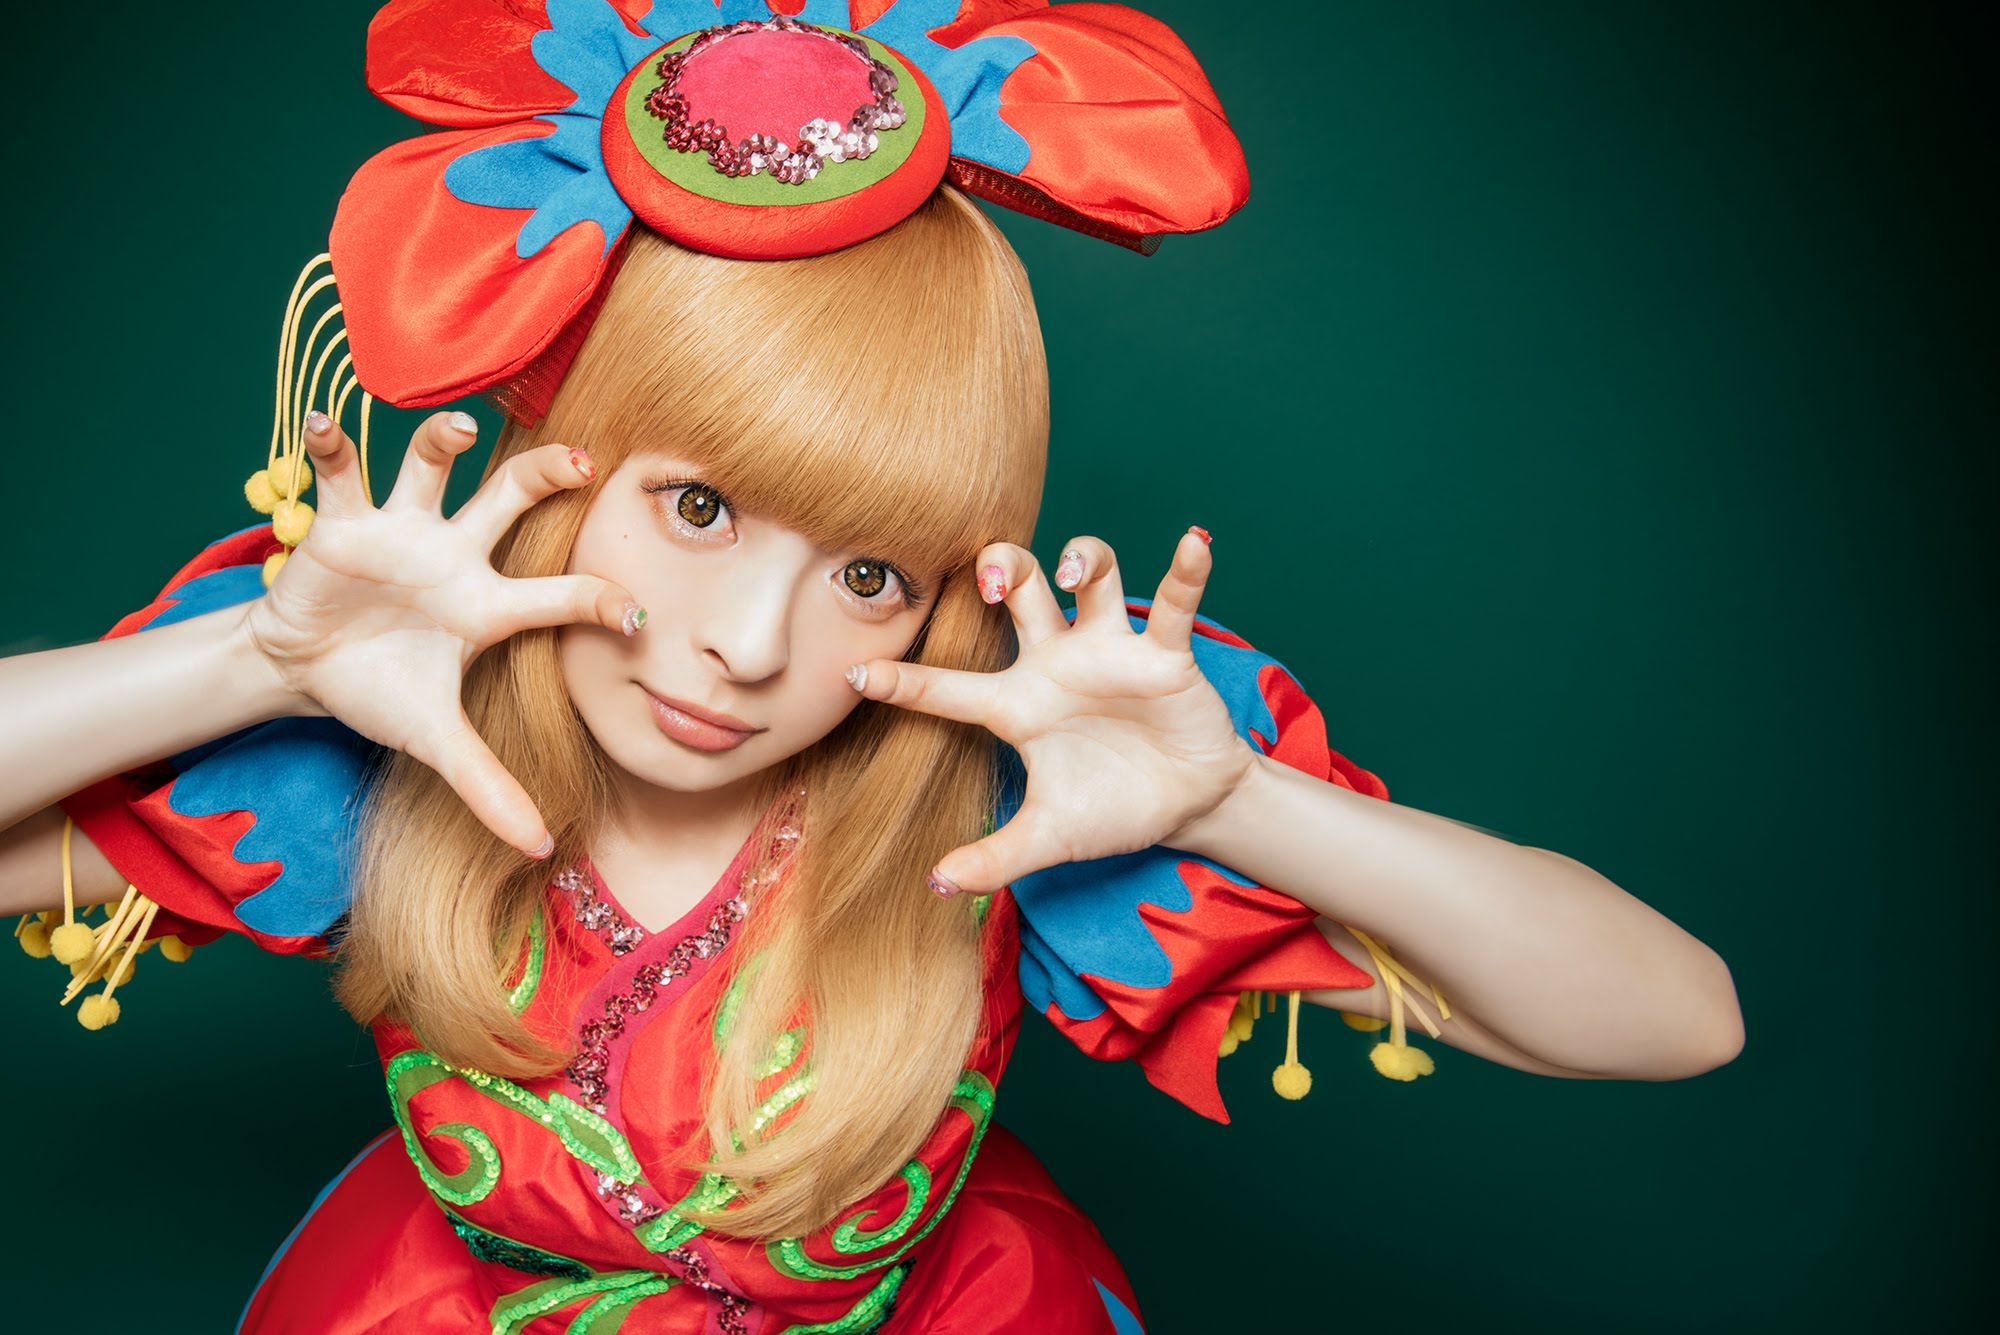 NekoPOP-Kyary-Pamyu-Pamyu-5ive-Years-Monster-Tour-NYC-announce2